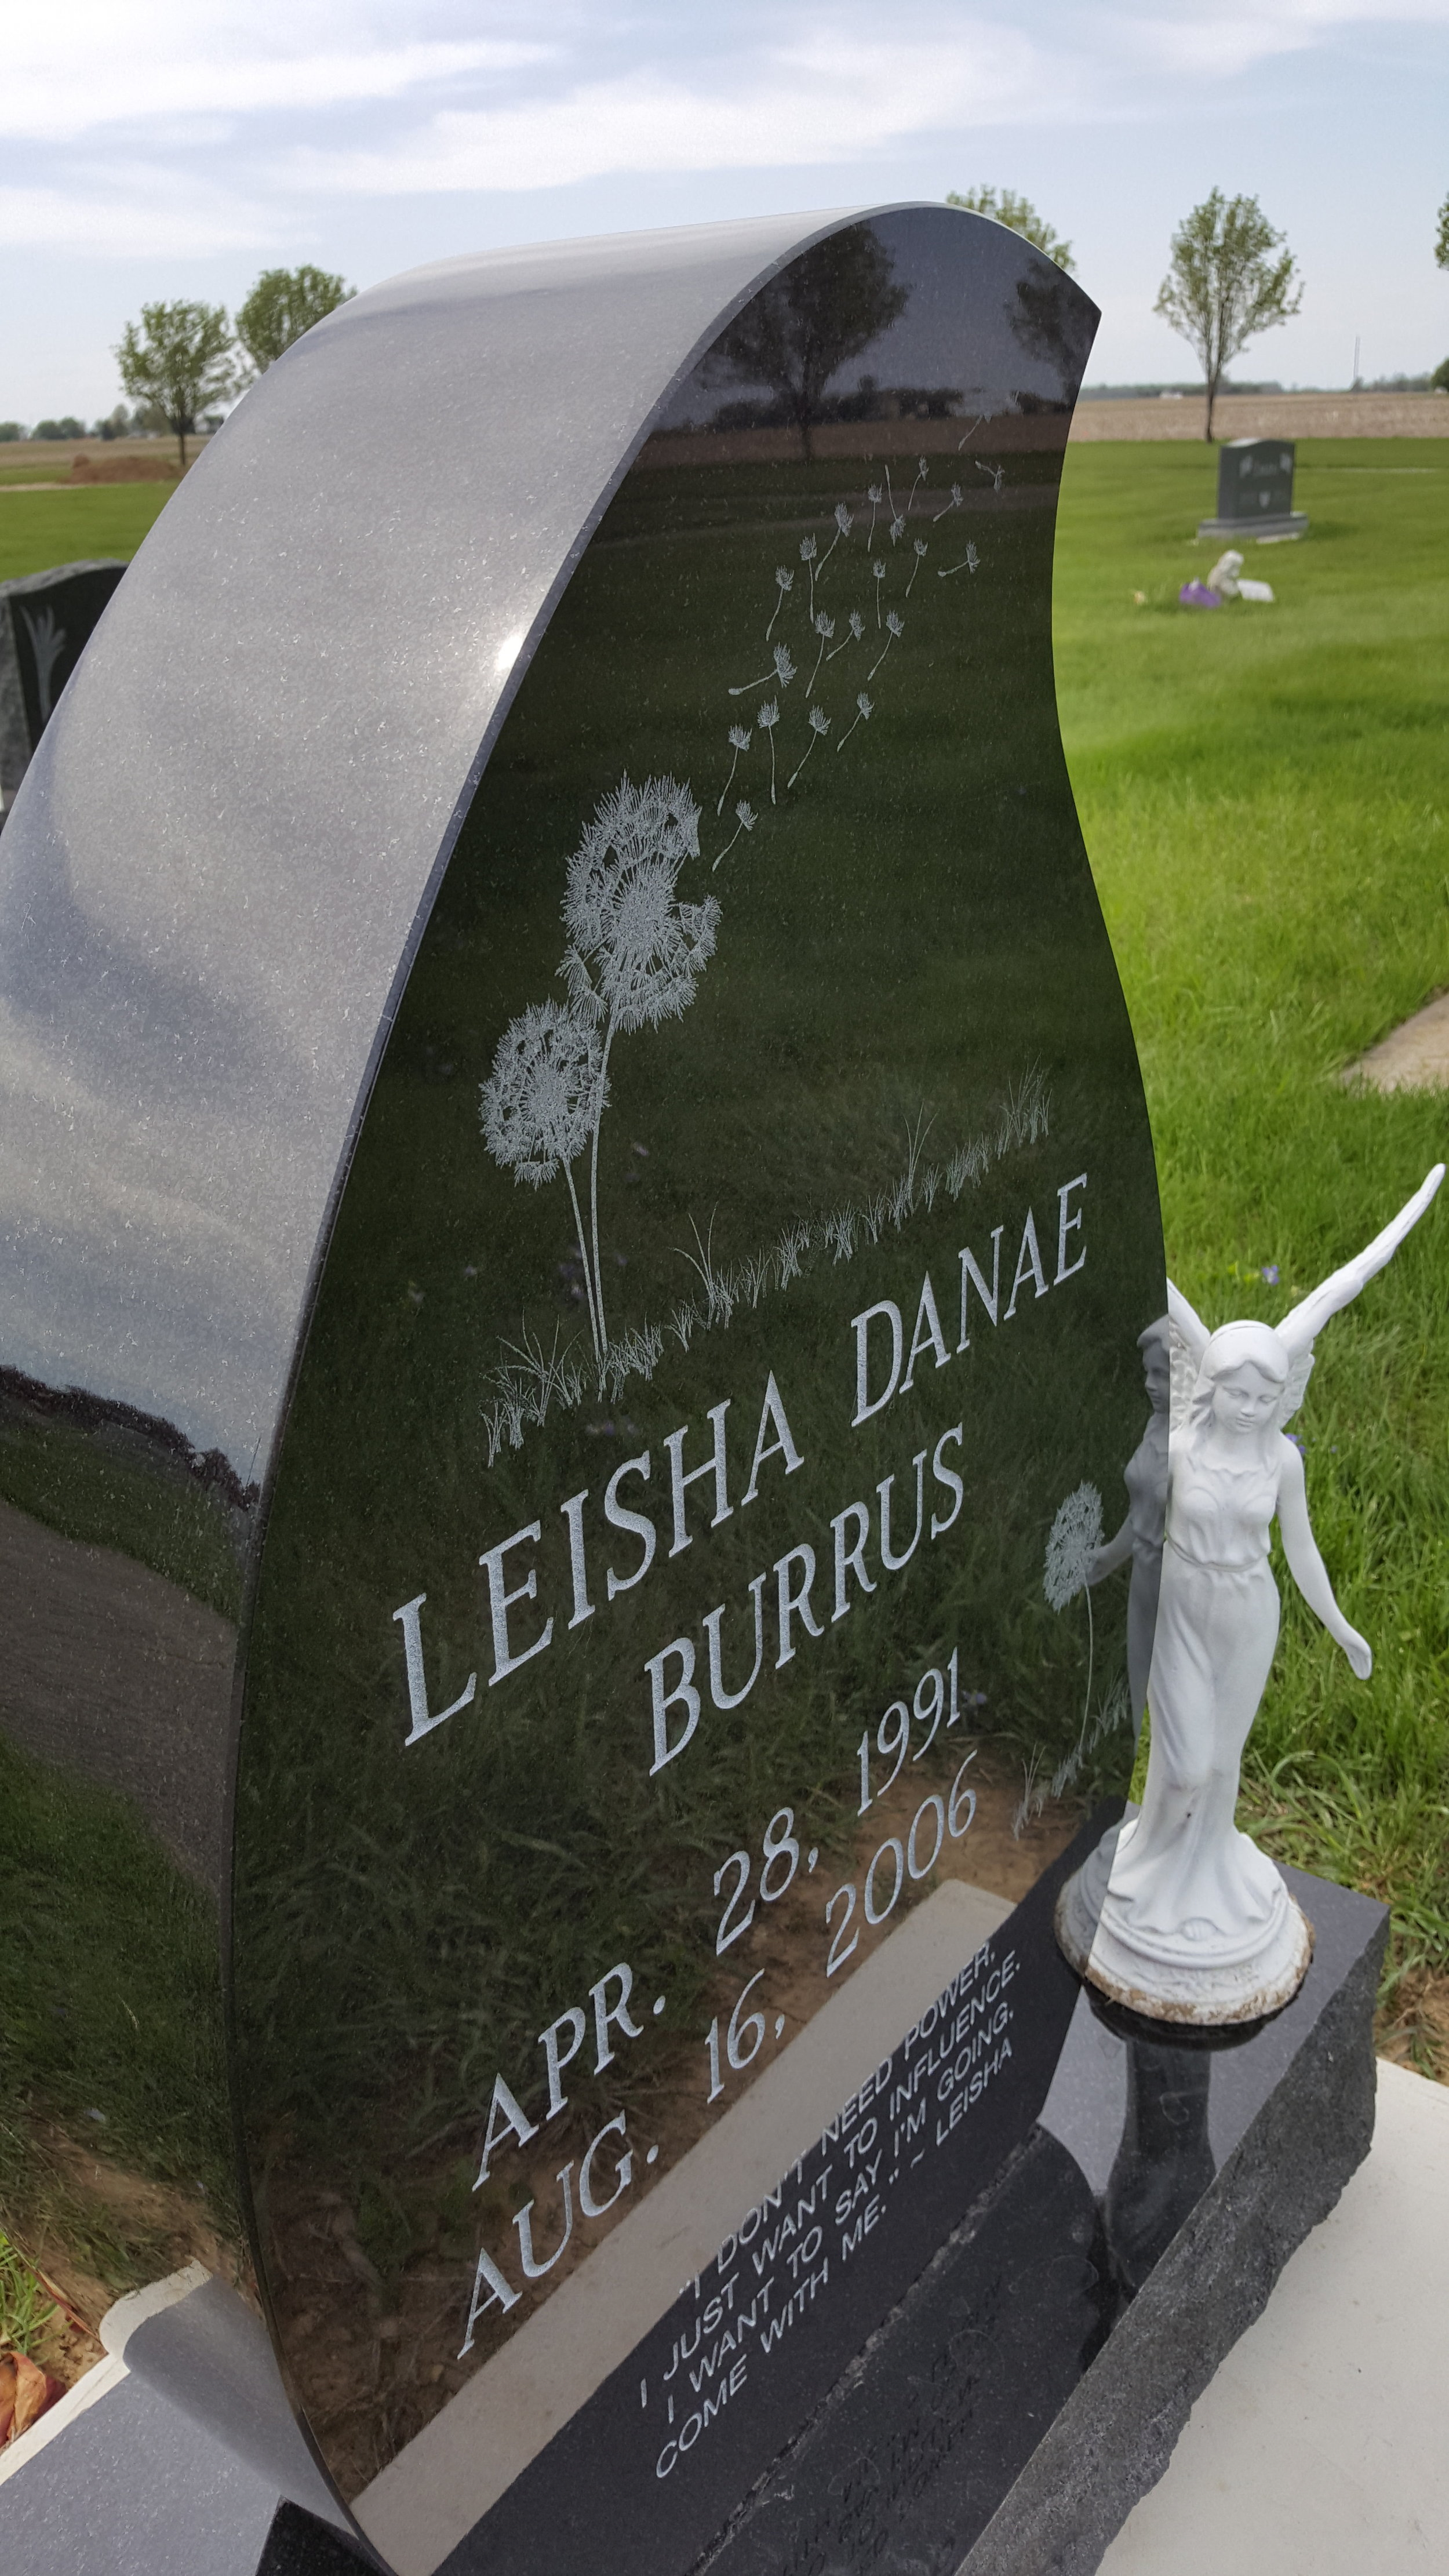 If you look closely, beyond Leisha's stone - and the stone setting off in the distance is a small angel surrounded by purple flowers. That is the resting place of Sarah Ginther, Leisha's mentor, counselor and friend who died in December 2013. The world is a better place because both of these girls lived!